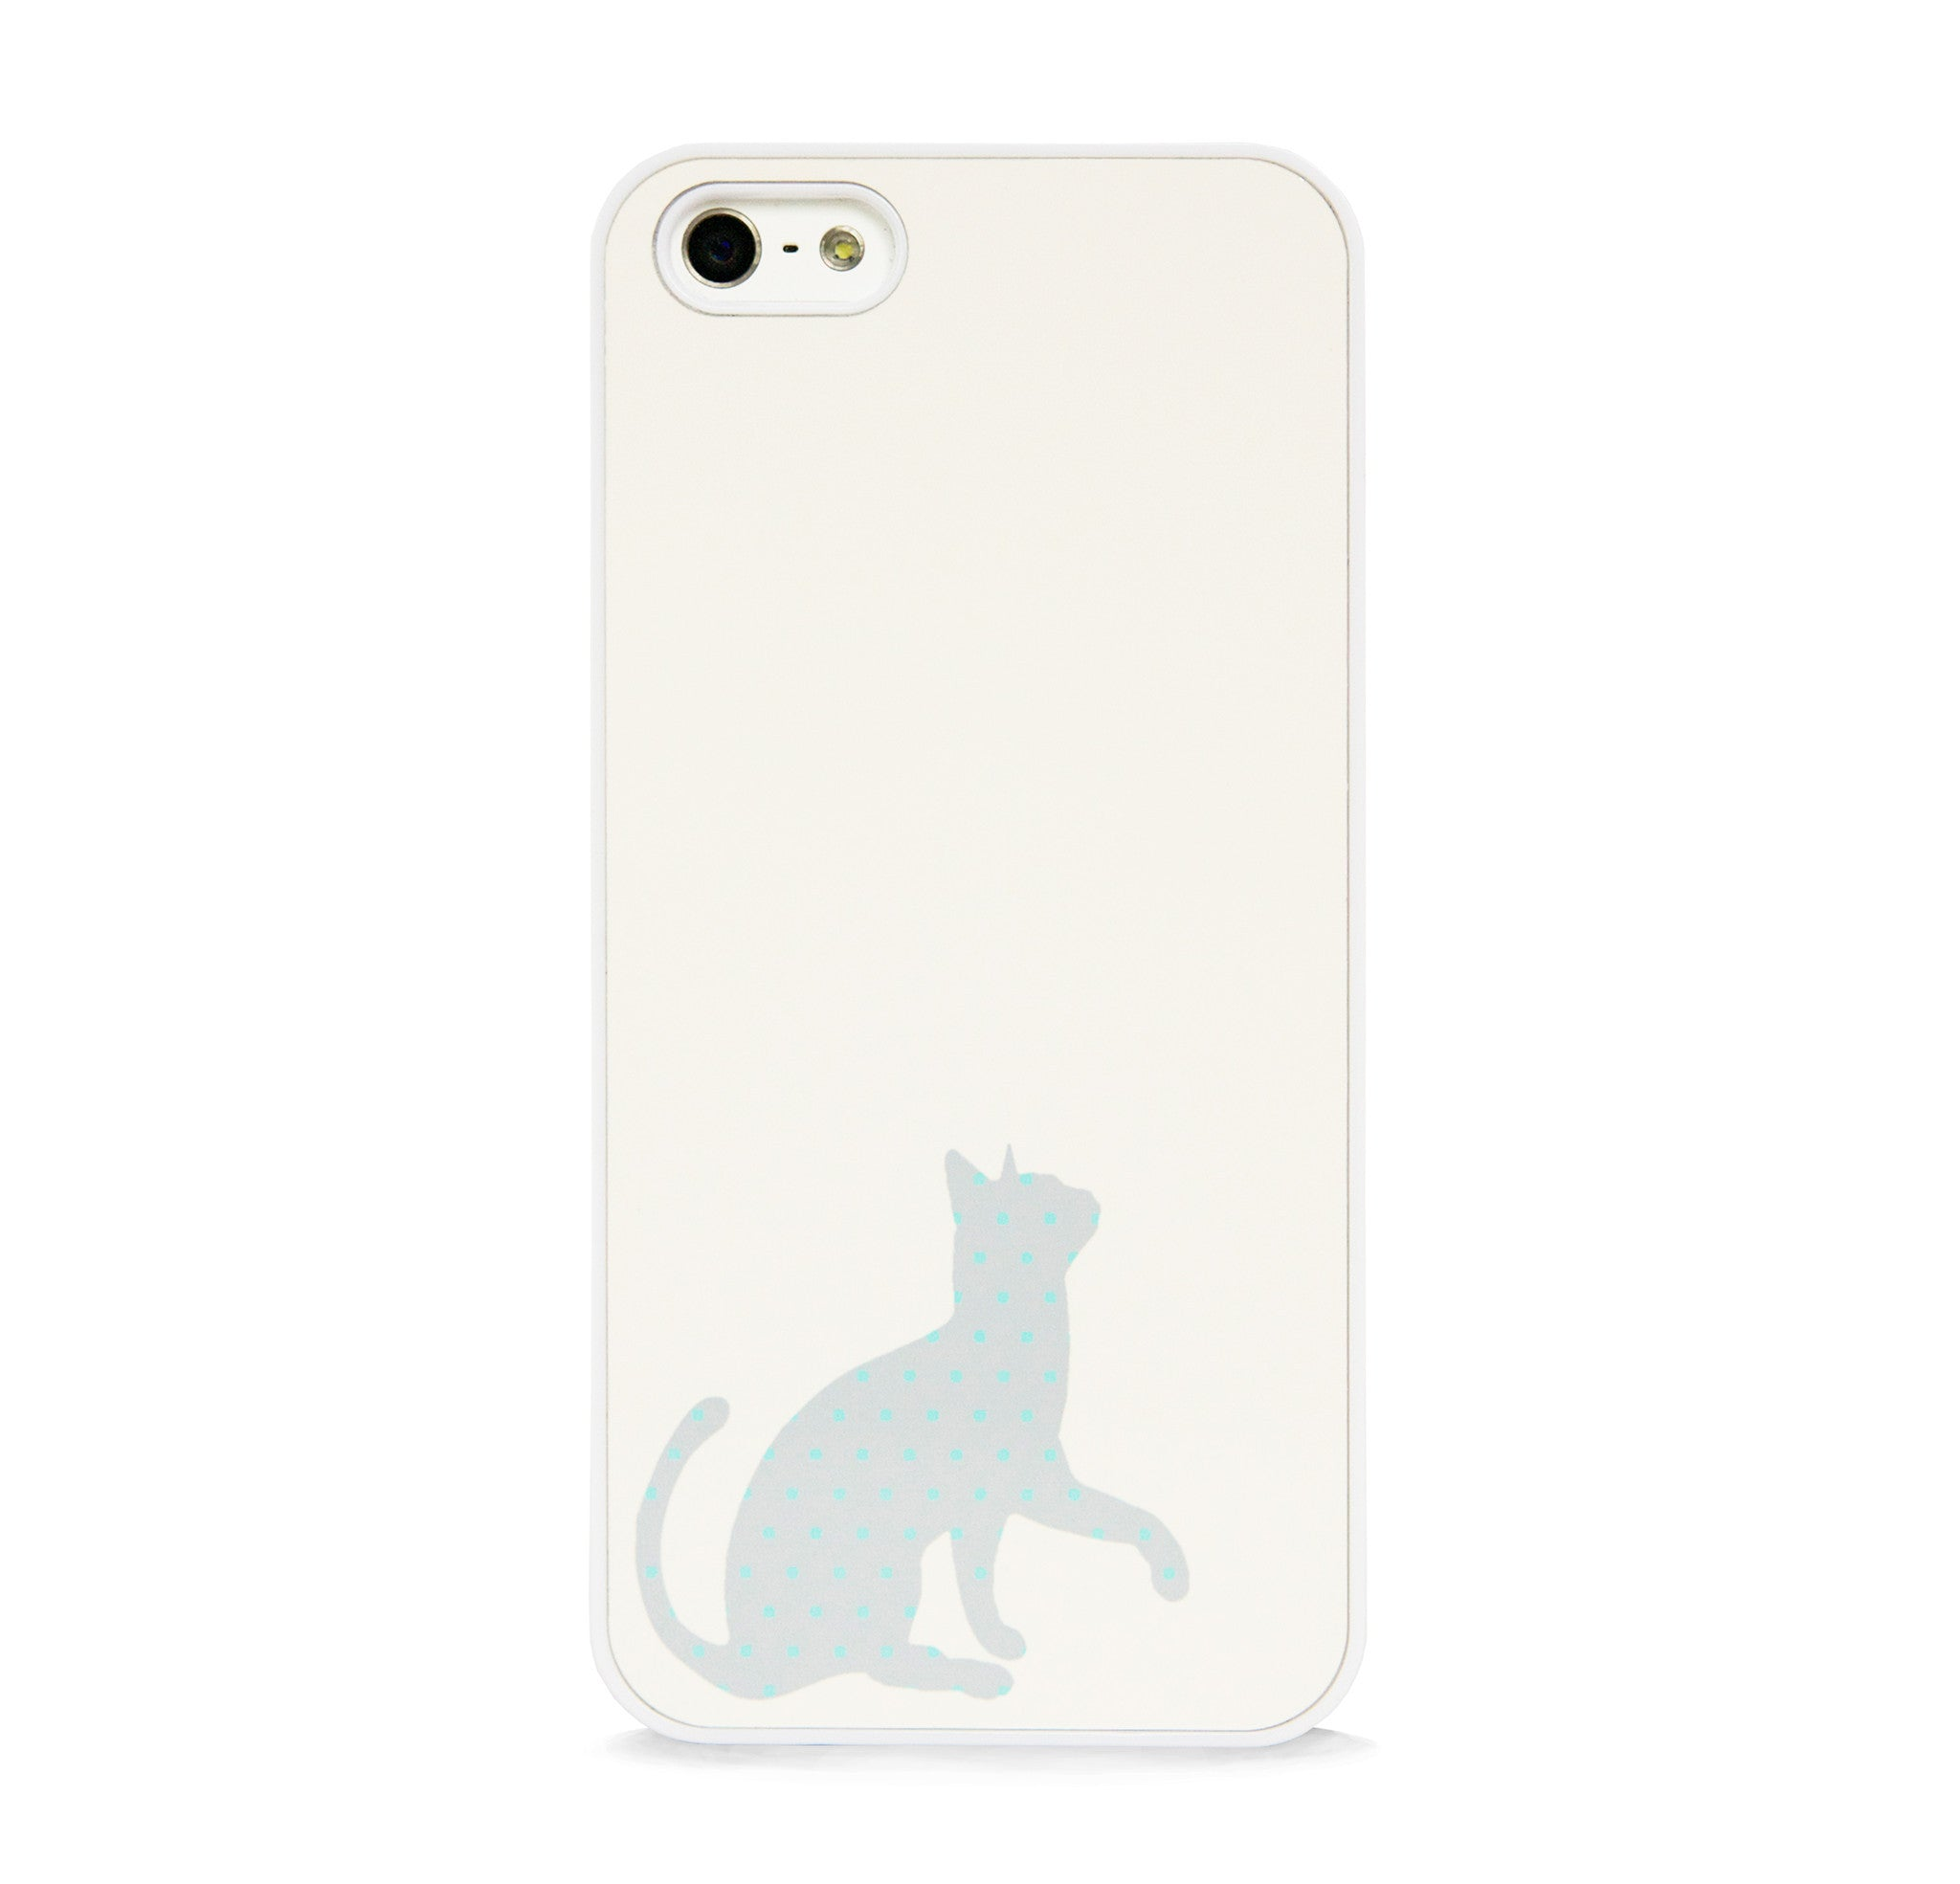 CUTE POLKA DOT CAT GREY FOR IPHONE 5/5S, IPHONE SE